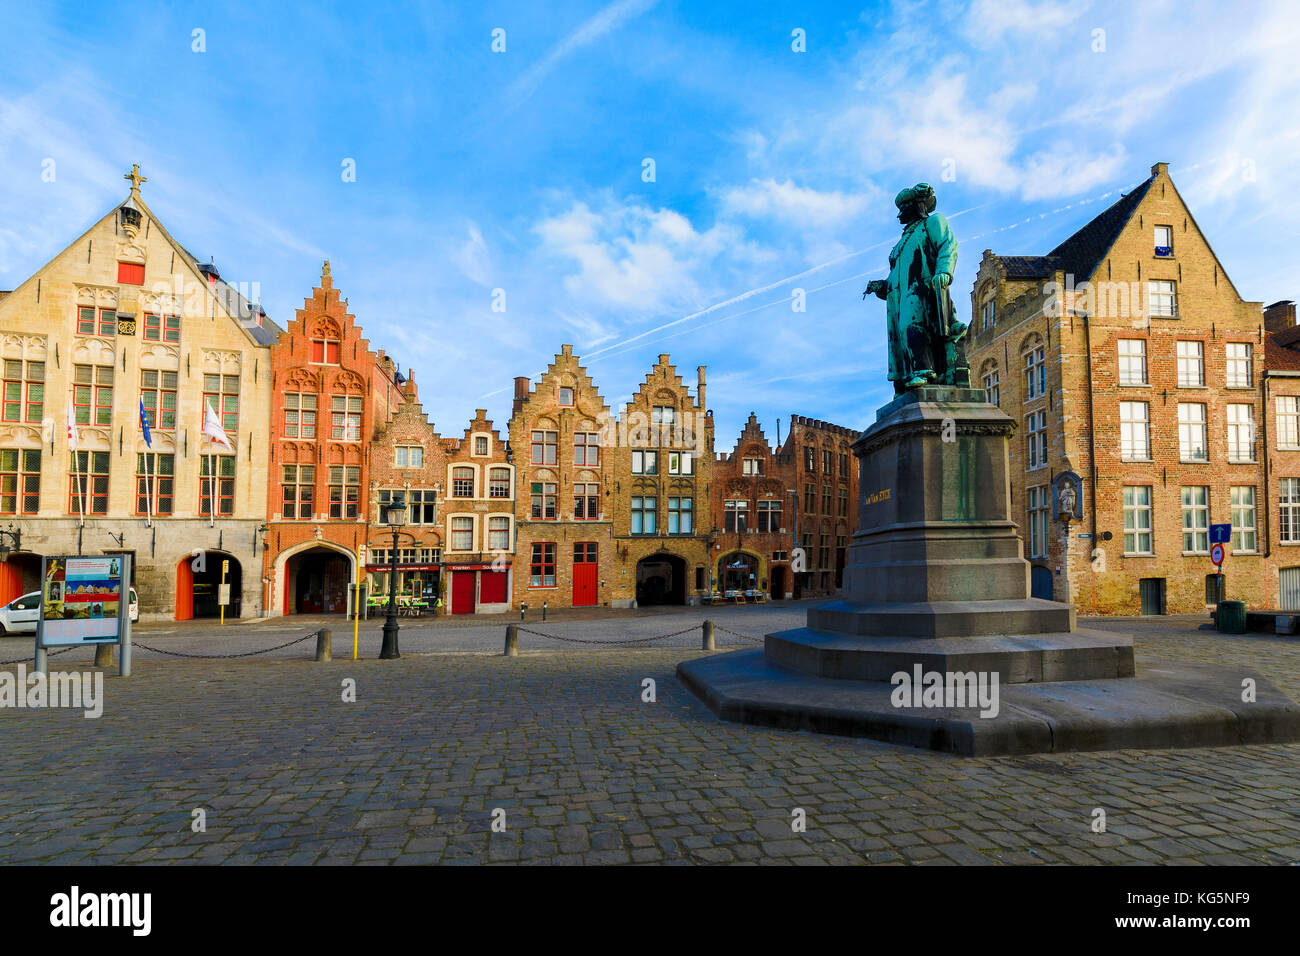 Old statue in the medieval square framed by the typical houses and buildings at dawn Bruges West Flanders Belgium - Stock Image